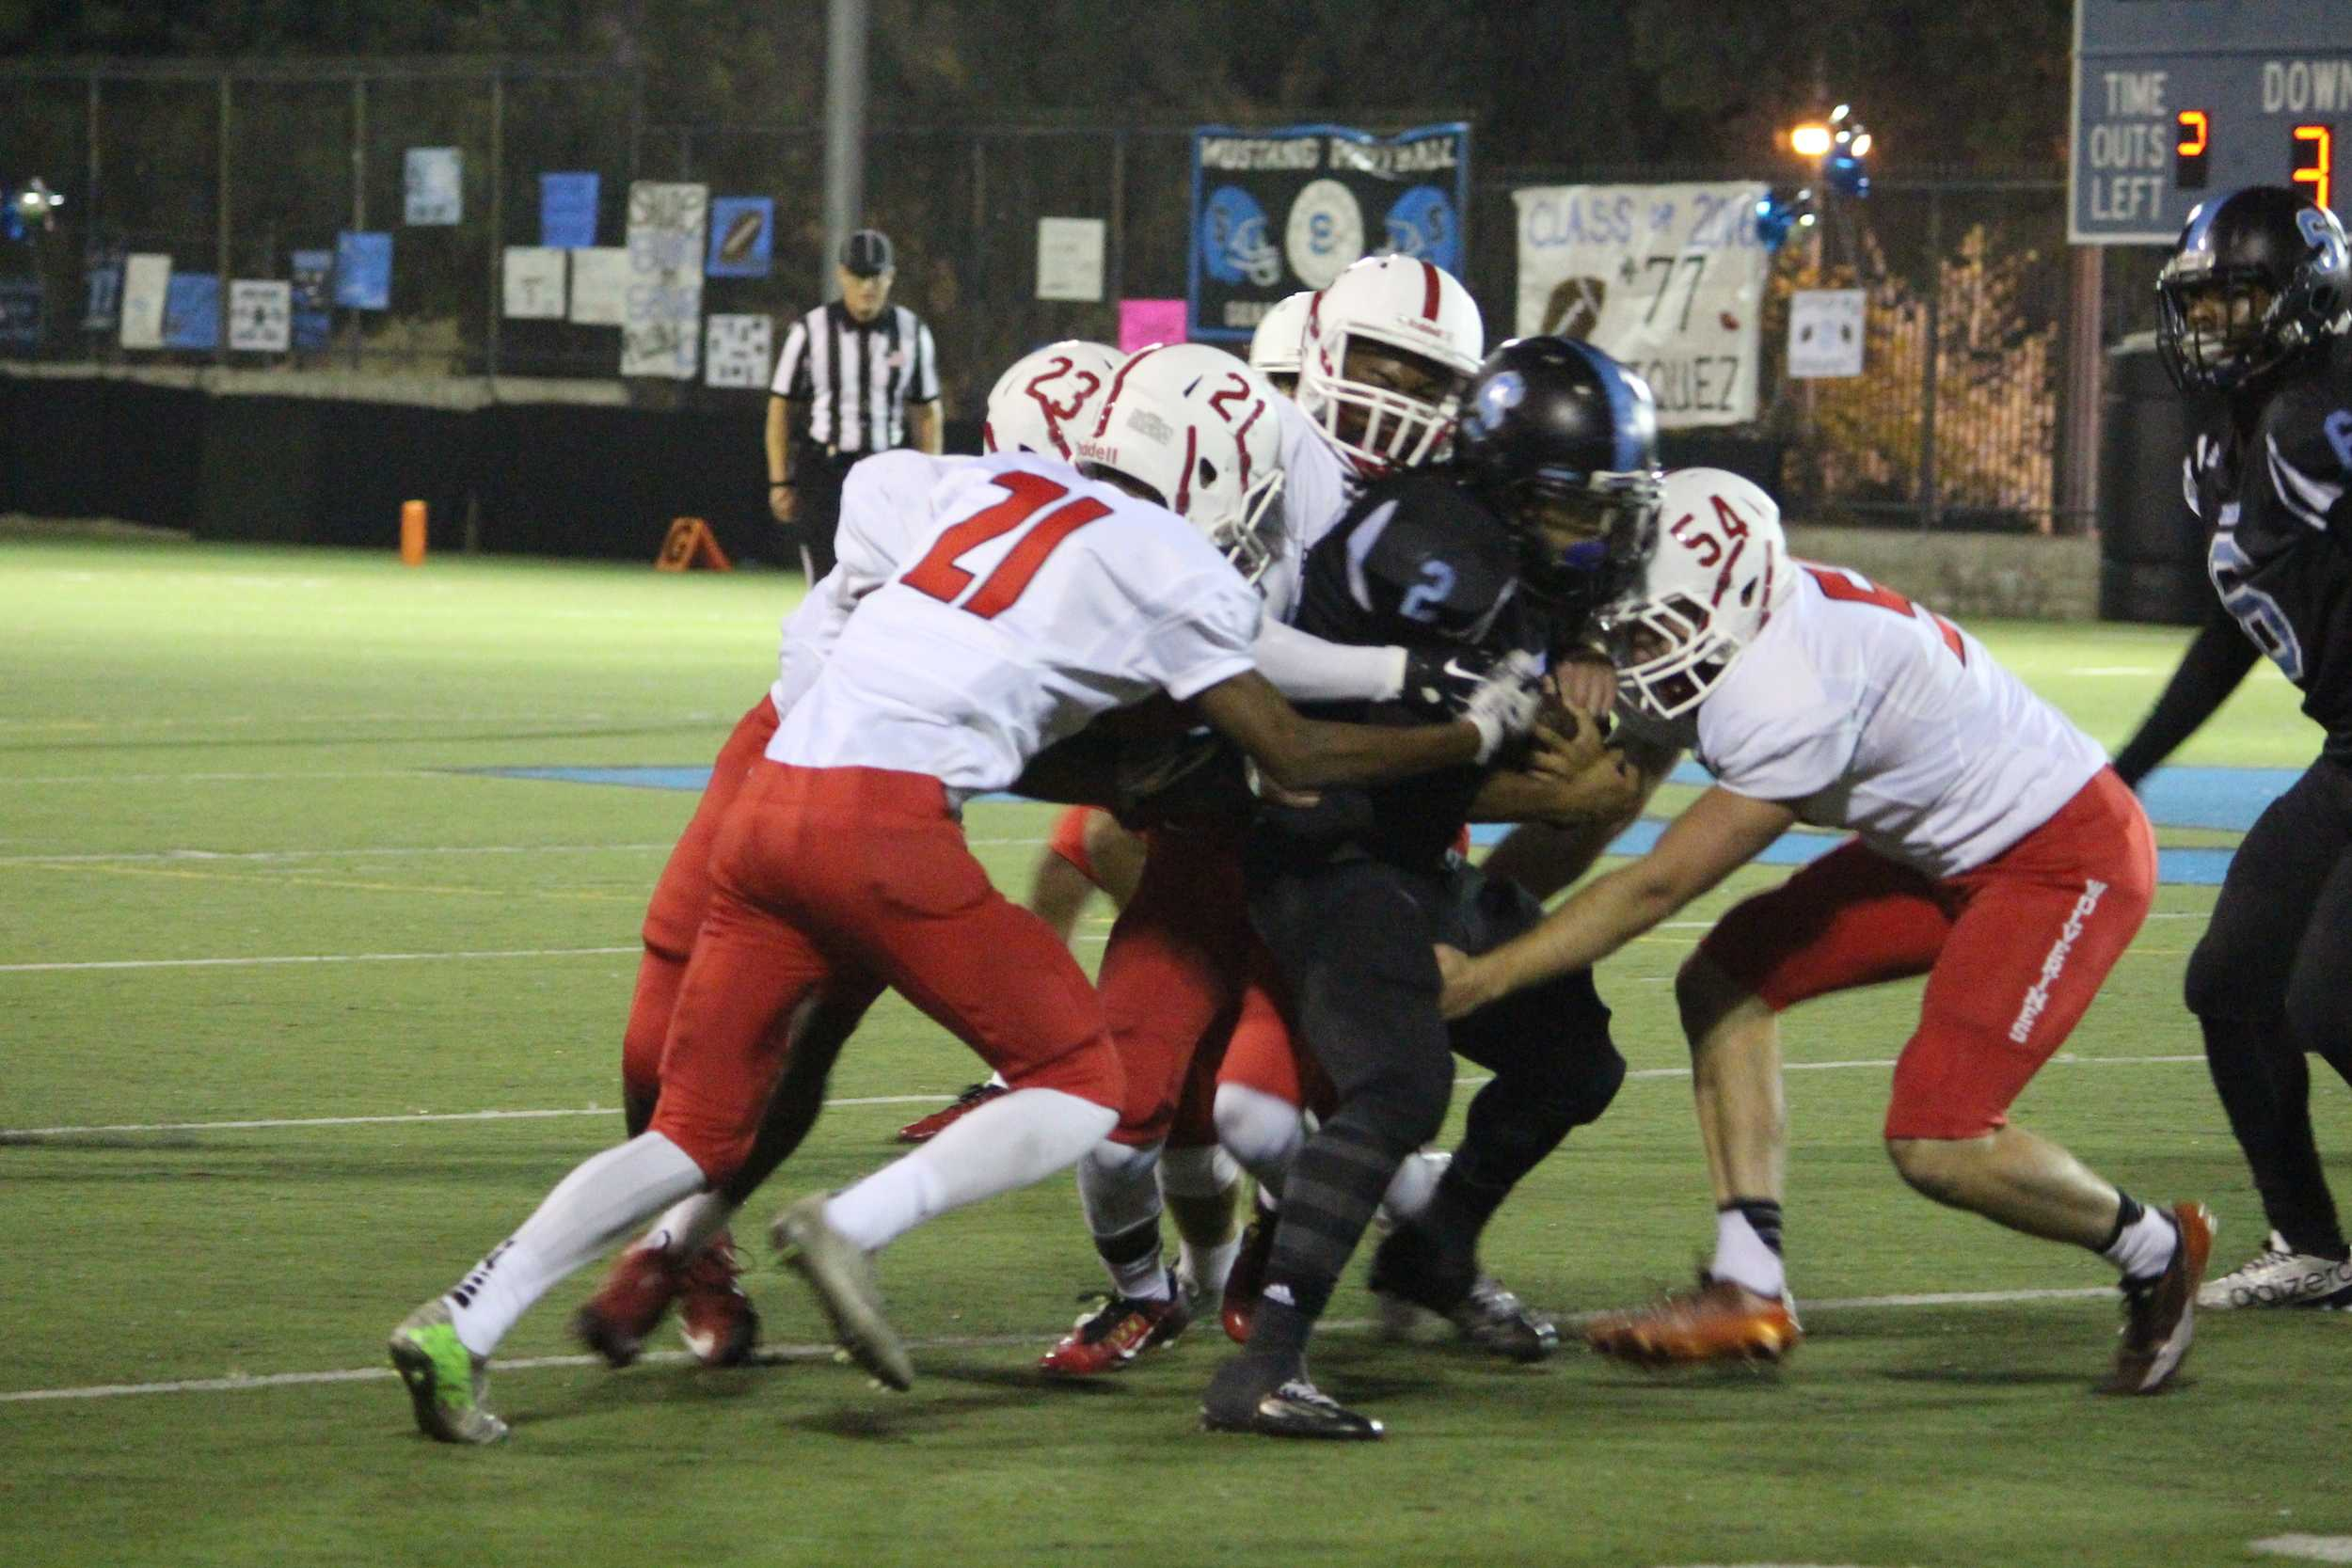 The Wolverines make a gang tackle on Salesian's Urael Blackshear '17 in the first quarter.